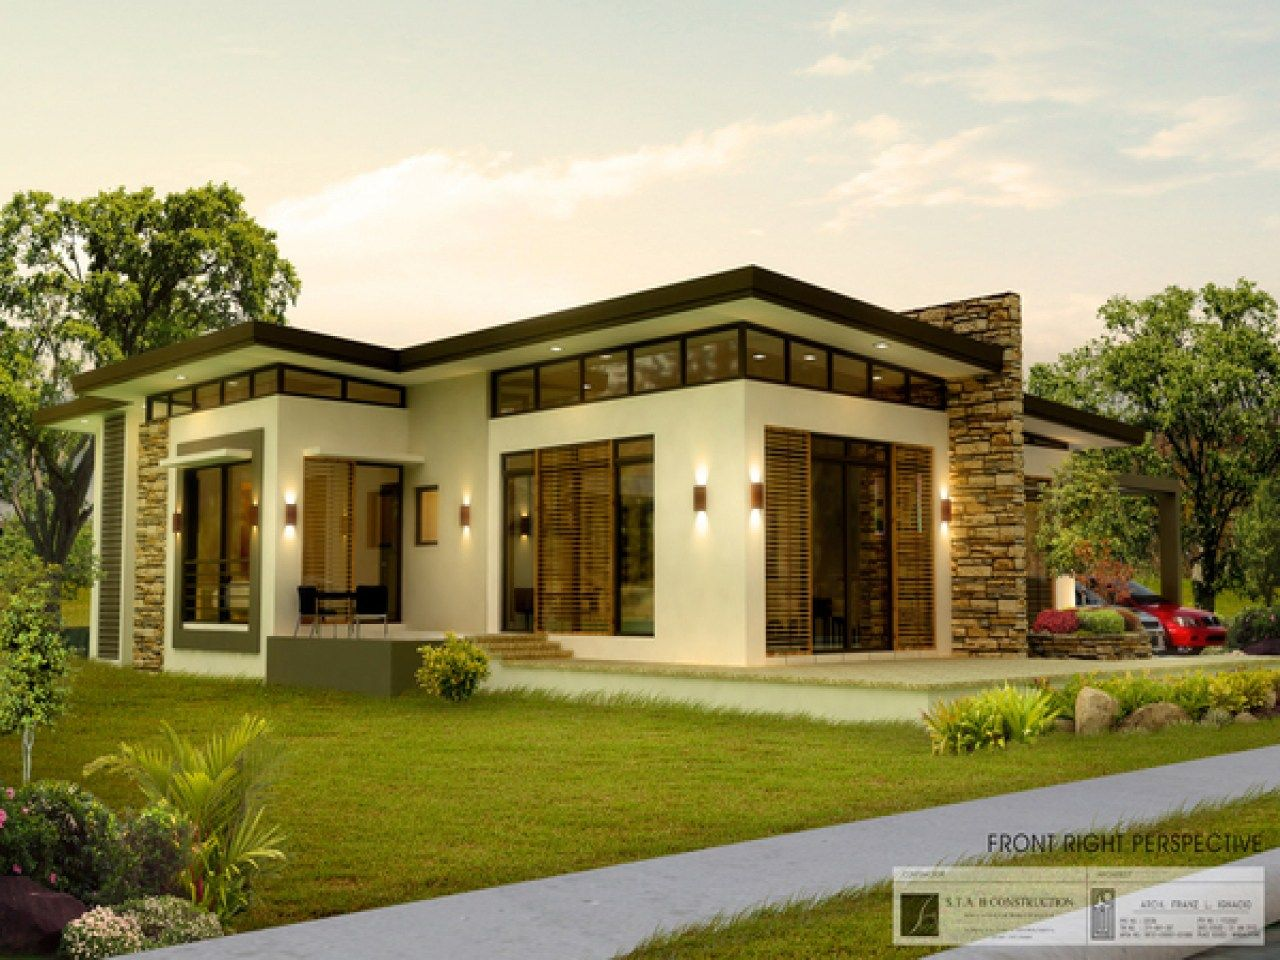 Home plans philippines bungalow house plans philippines Bungalow houses plans